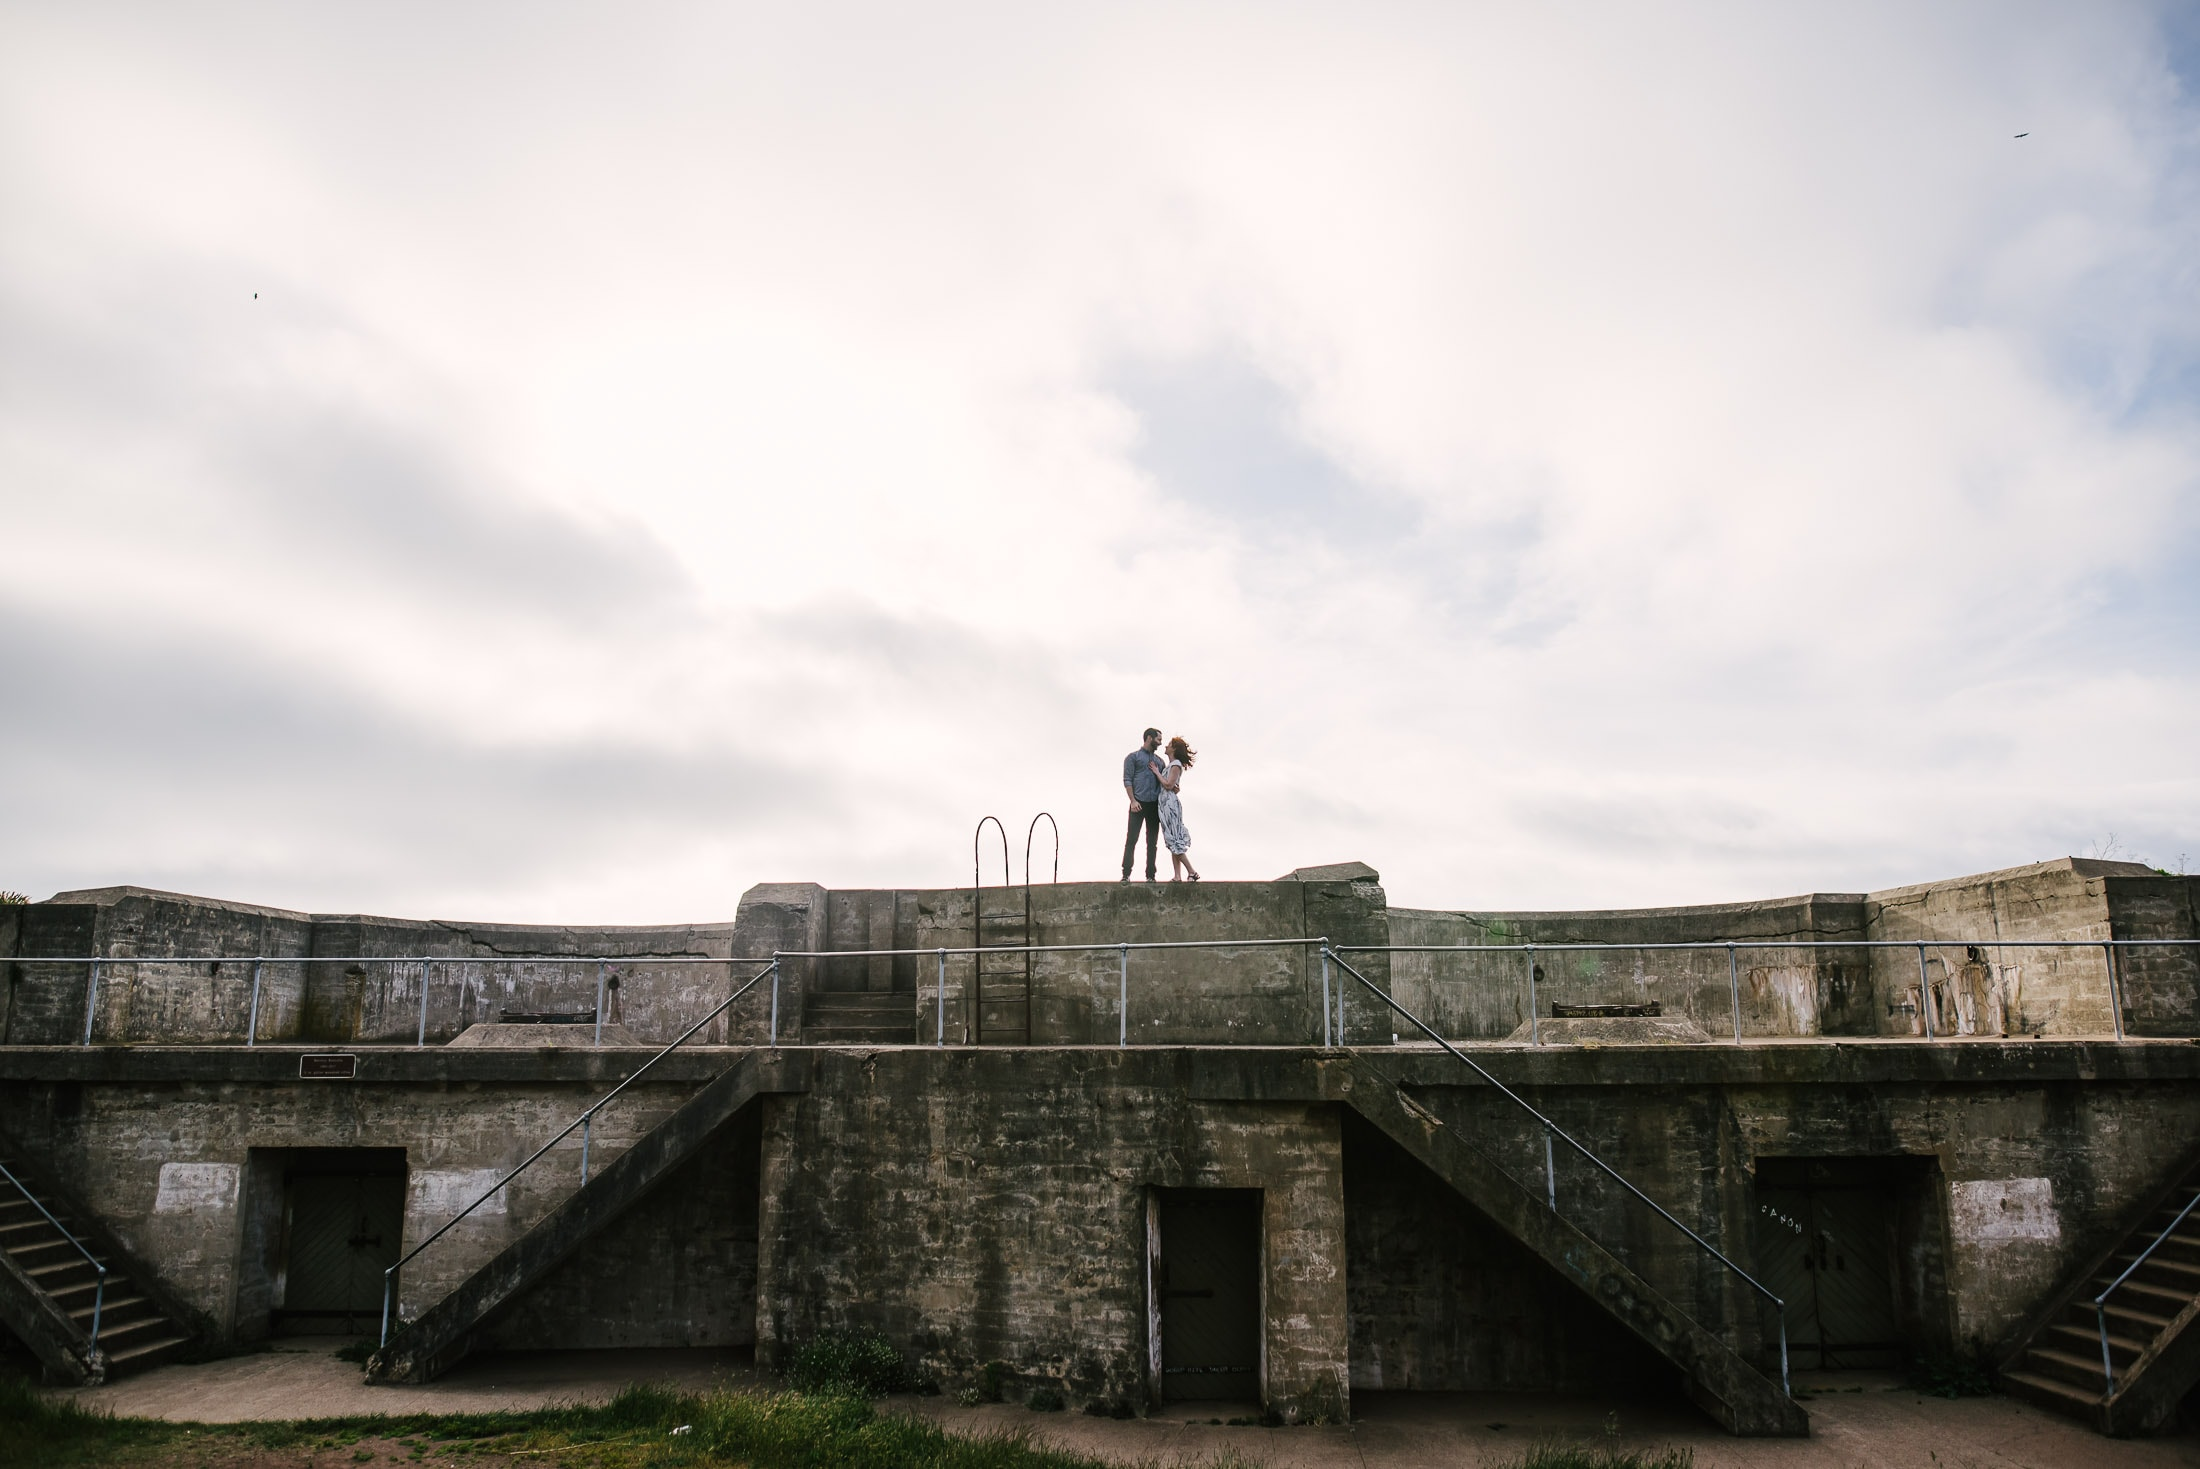 Engagement Session Overlooking the Golden Gate Bridge